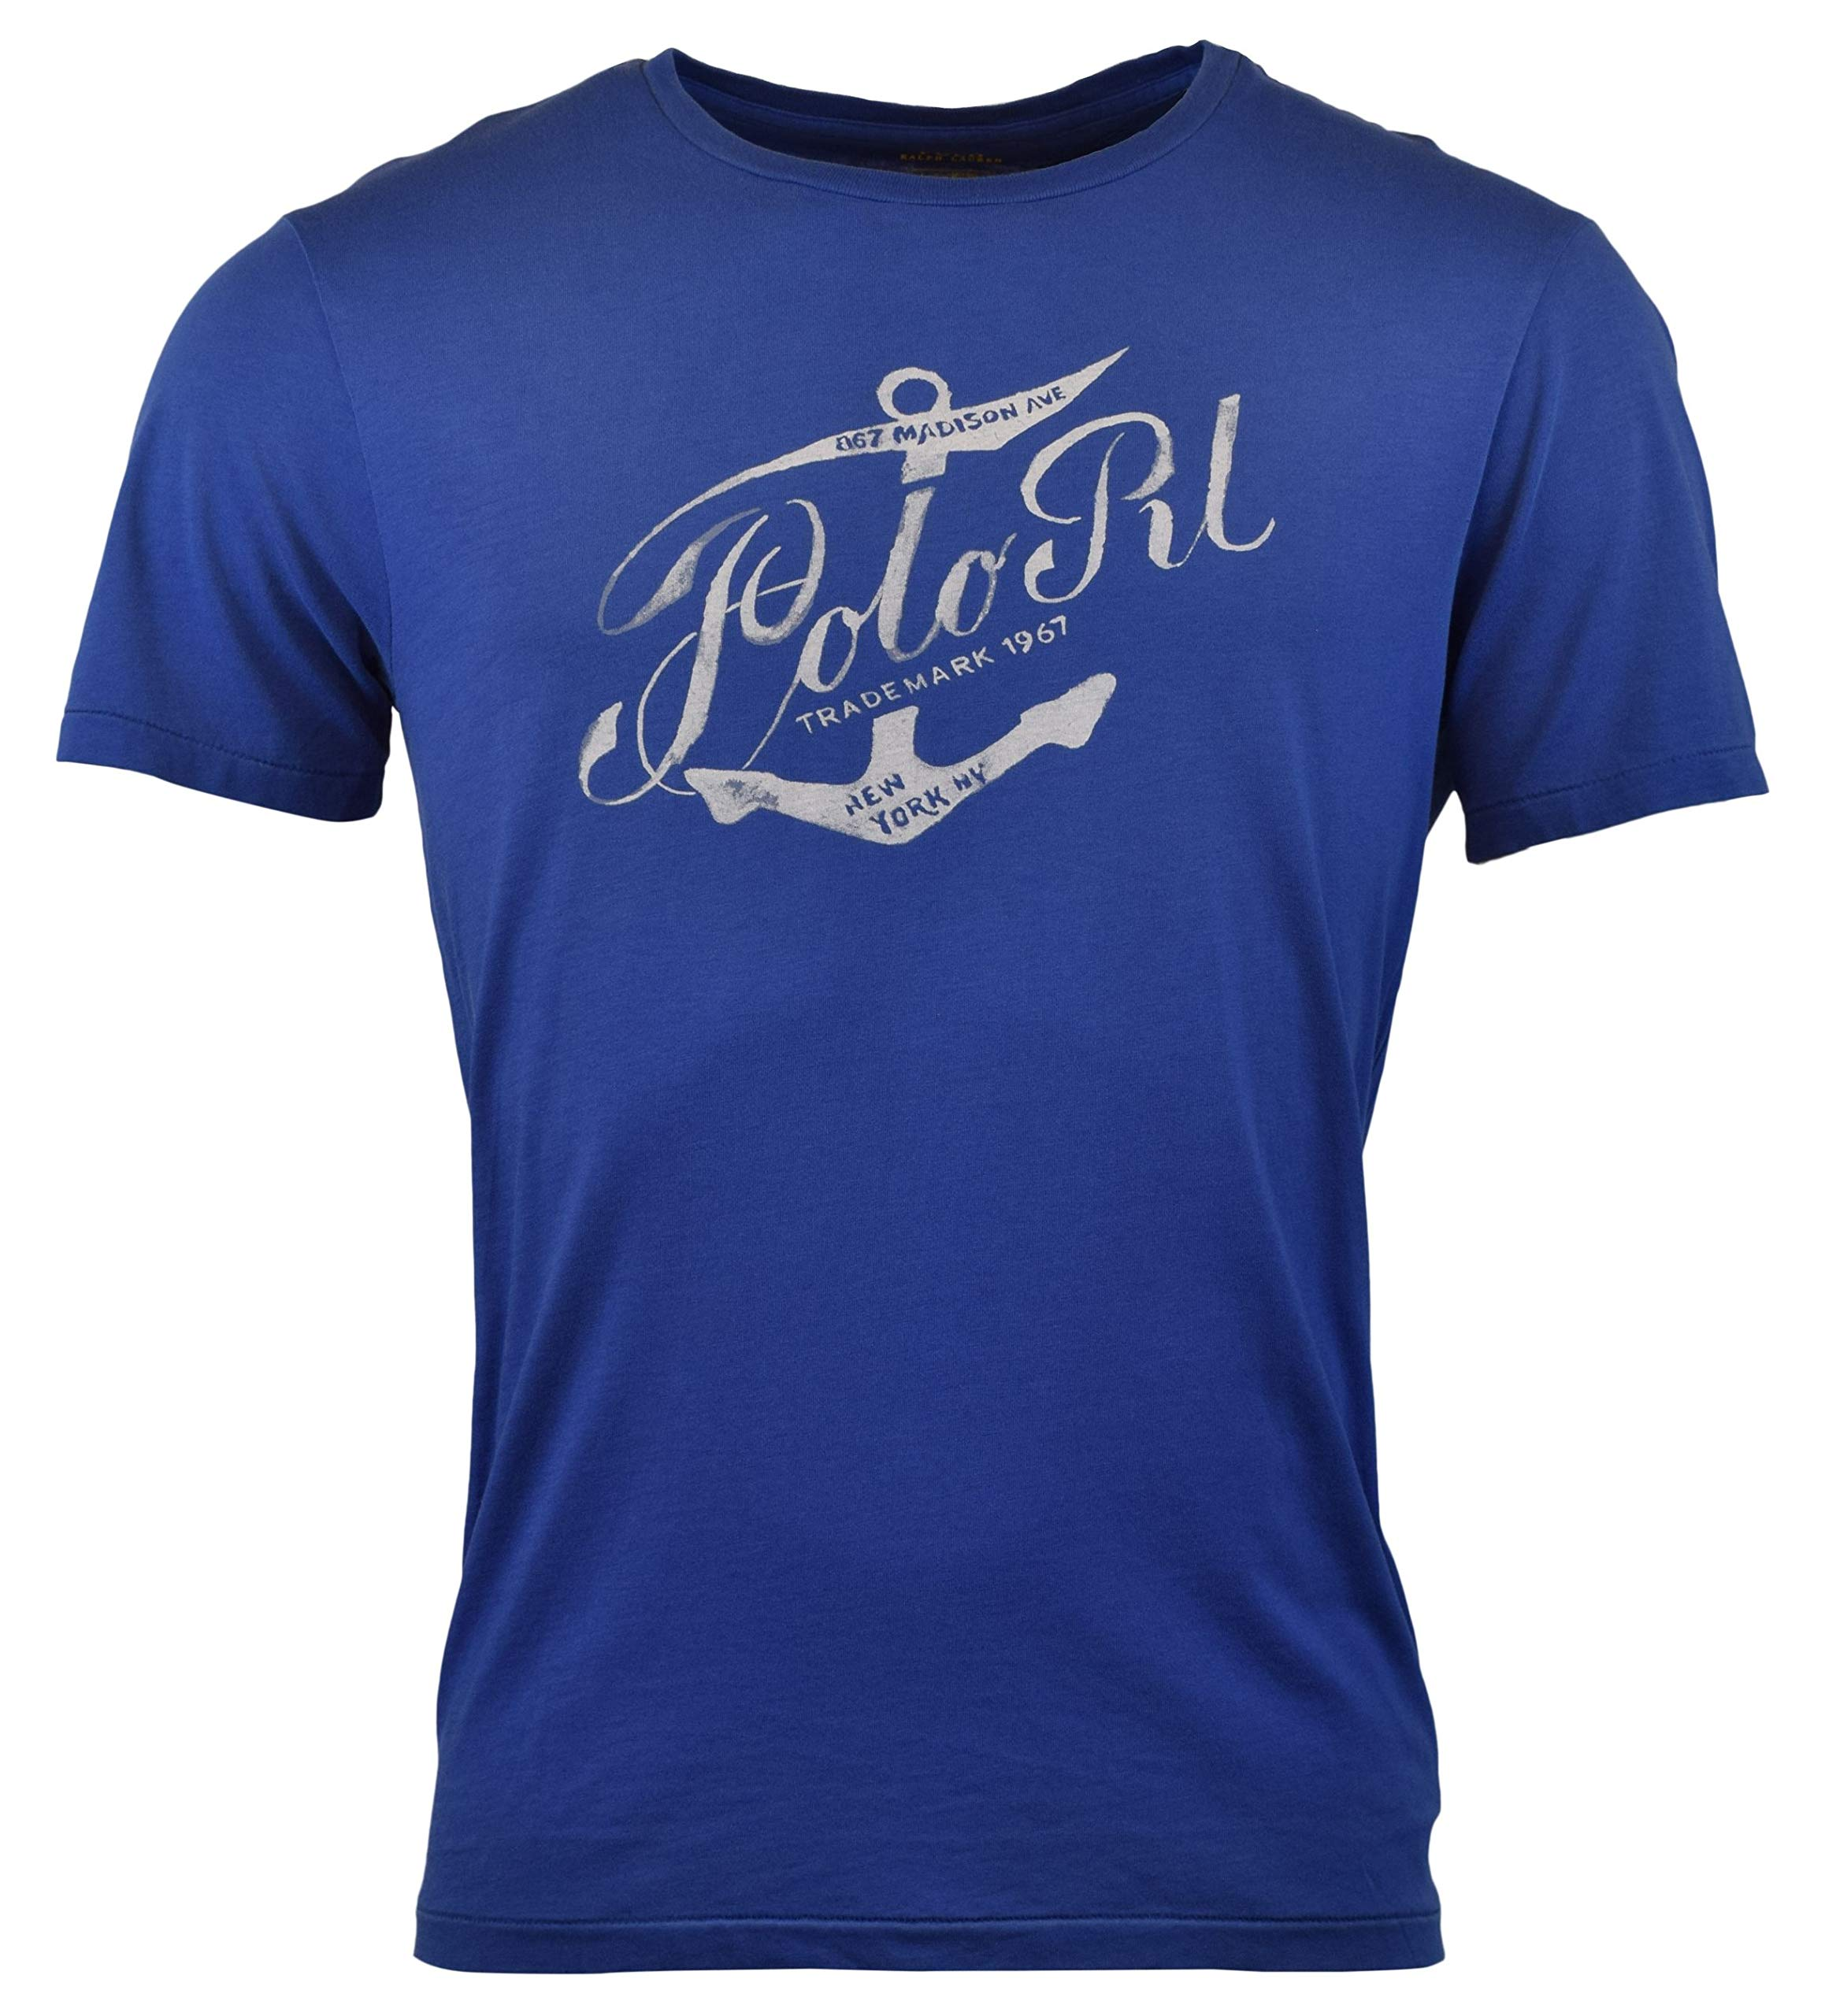 2f8a9d5a7 Galleon - Polo Ralph Lauren Mens Custom Fit Graphic Logo T-Shirt - M - Blue